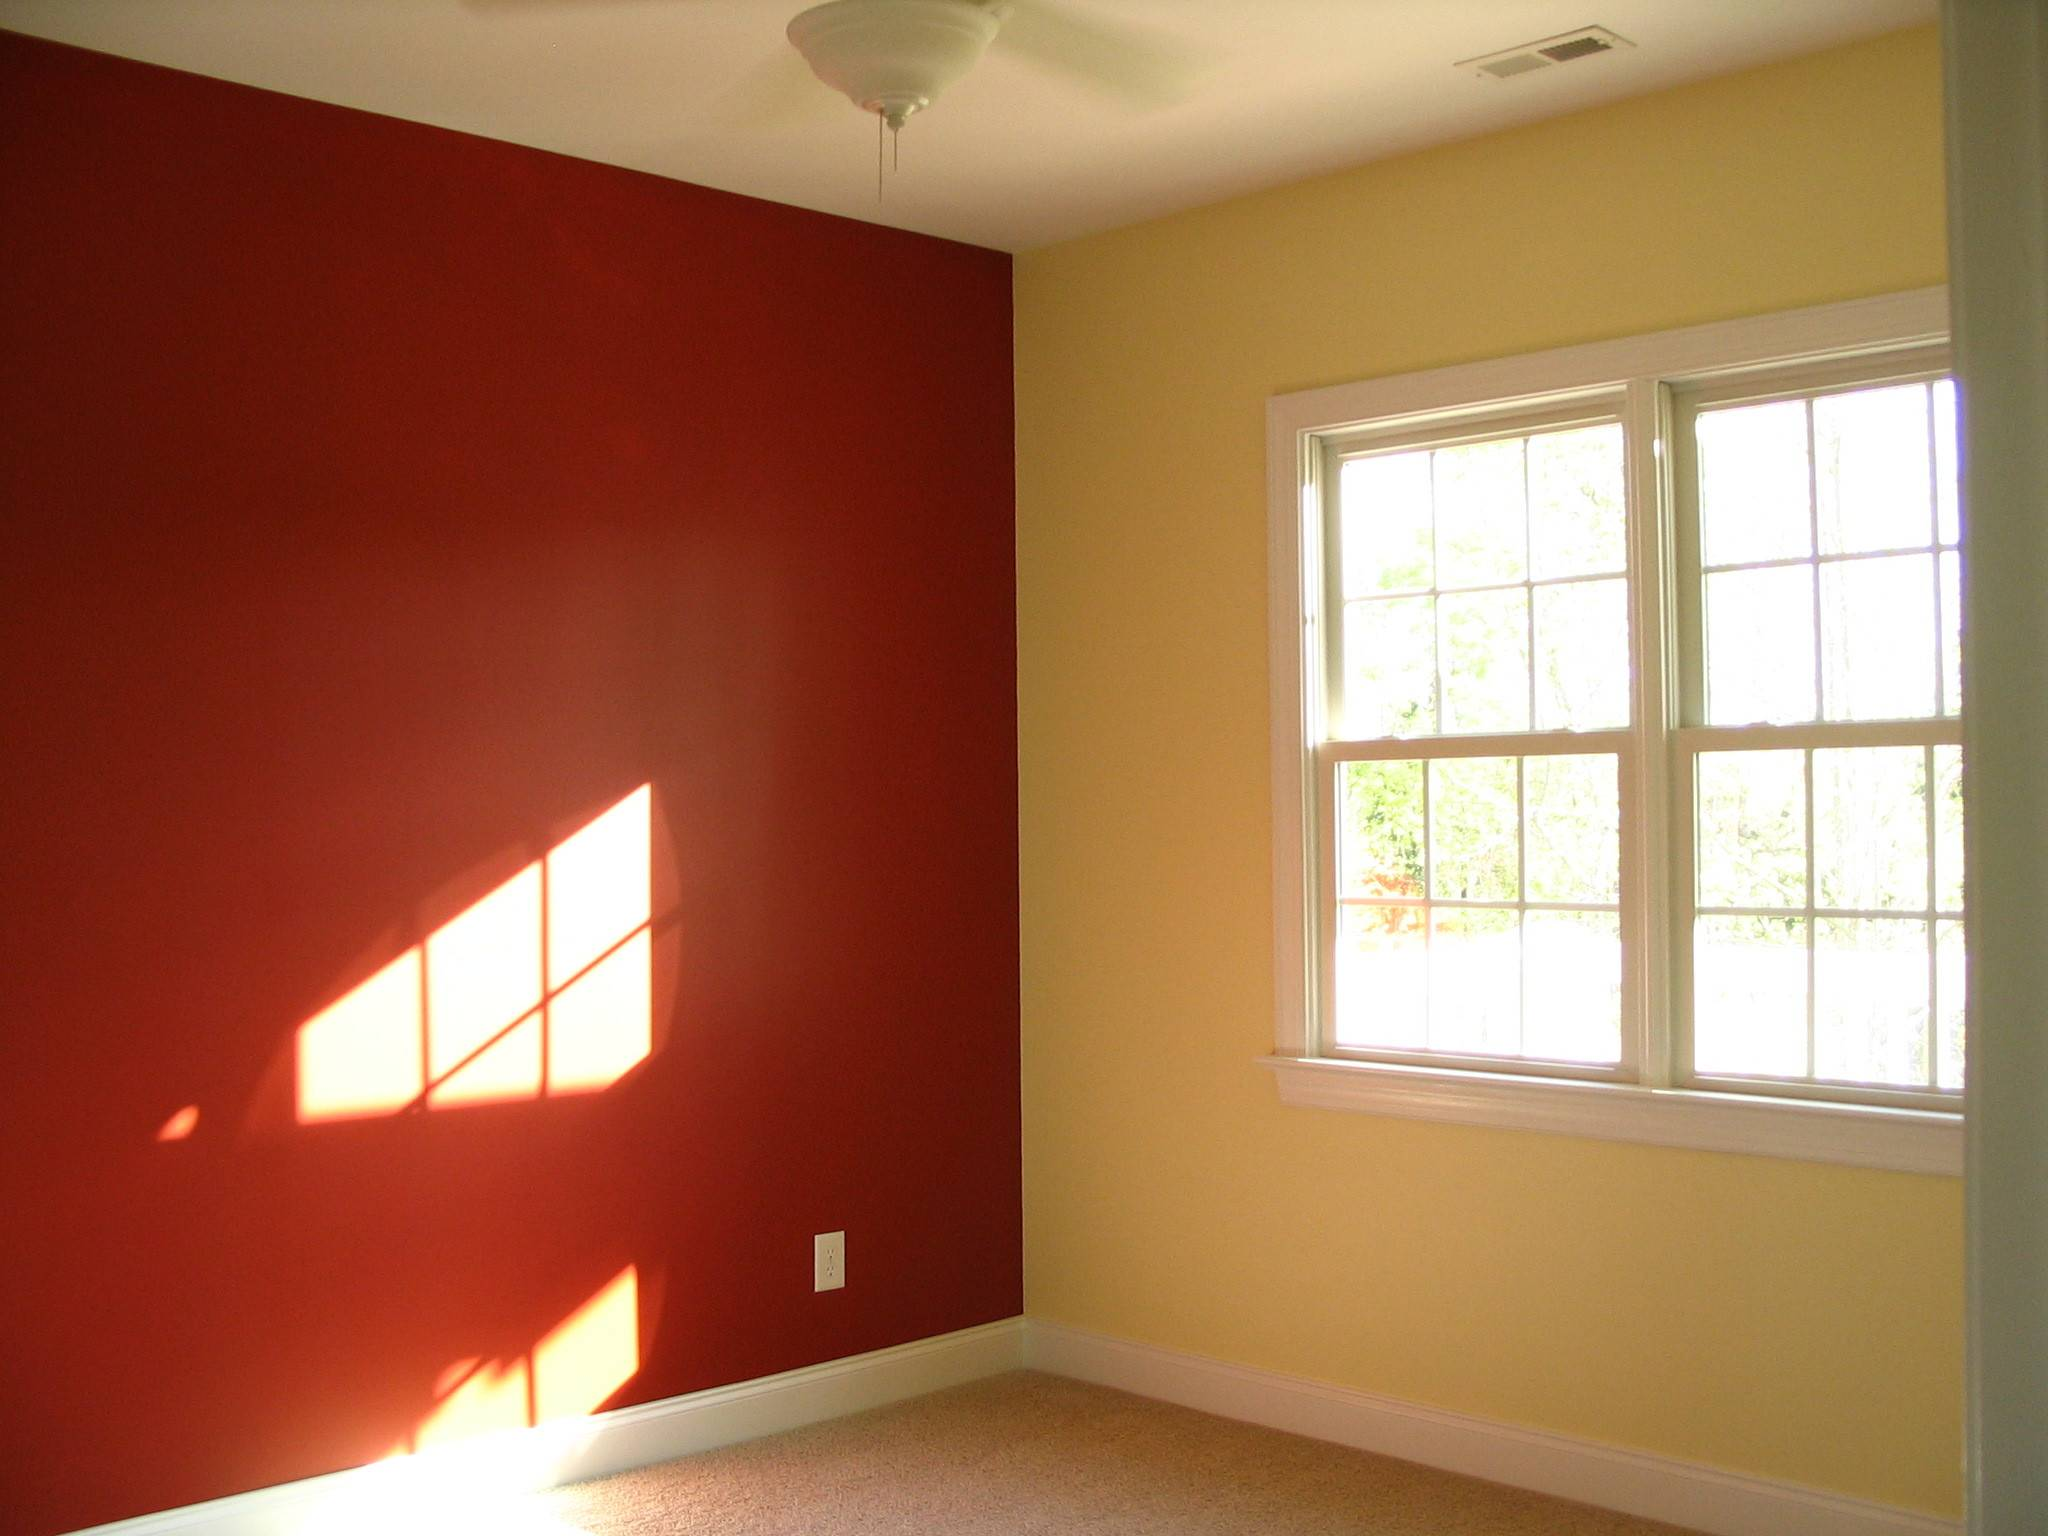 21 Pictures Two Color Walls Bedroom - Homes Decor